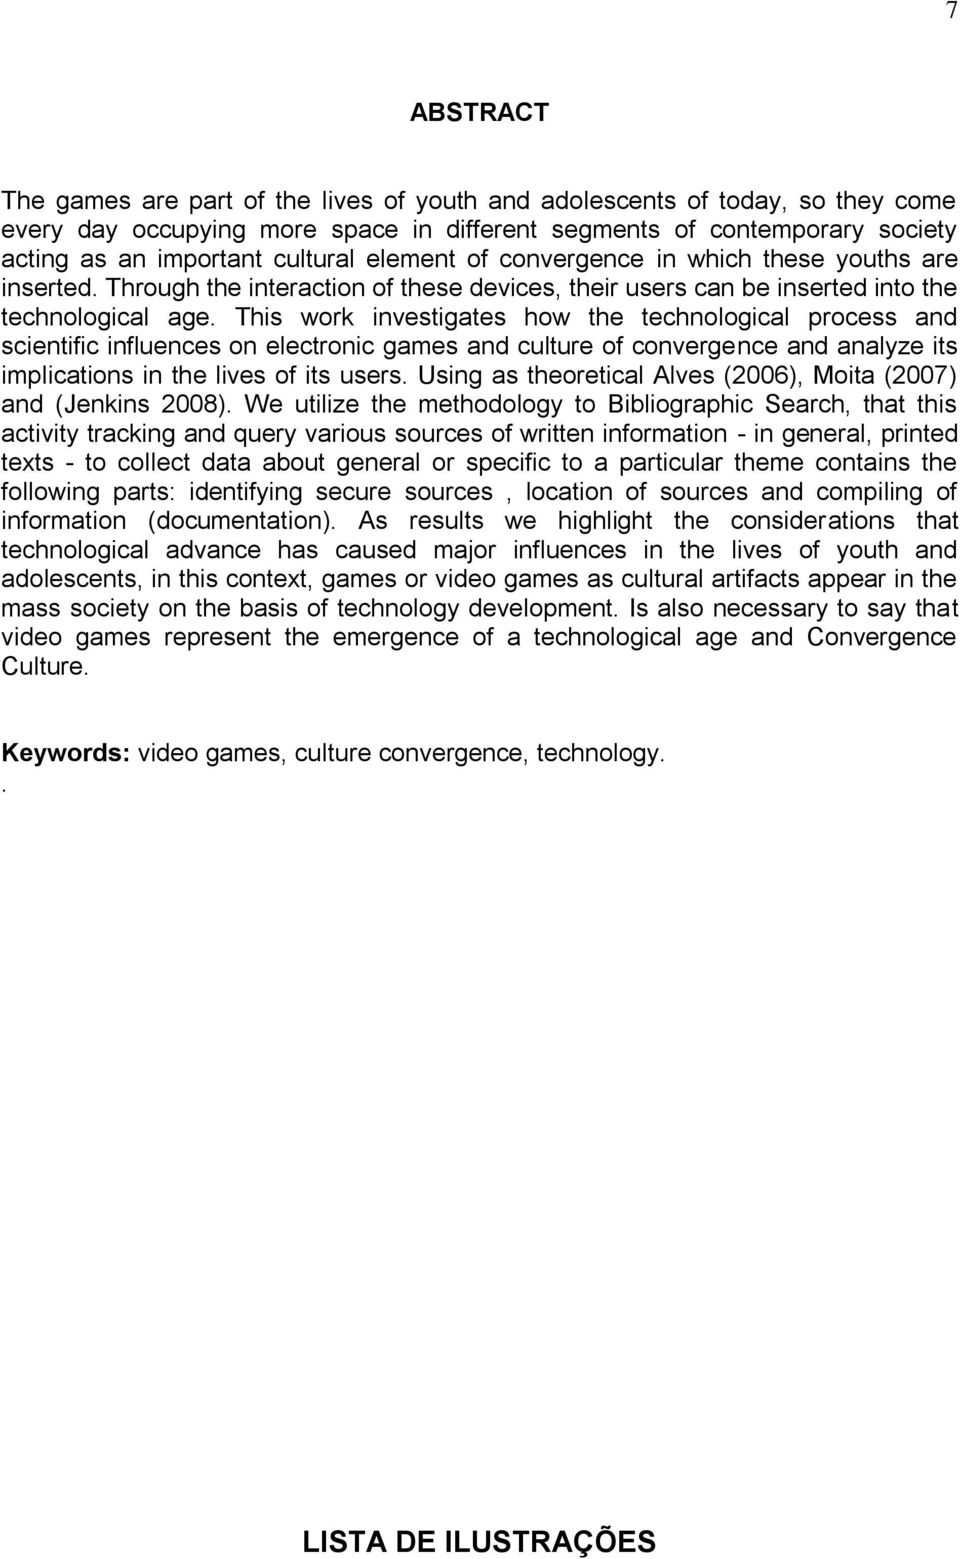 This work investigates how the technological process and scientific influences on electronic games and culture of convergence and analyze its implications in the lives of its users.